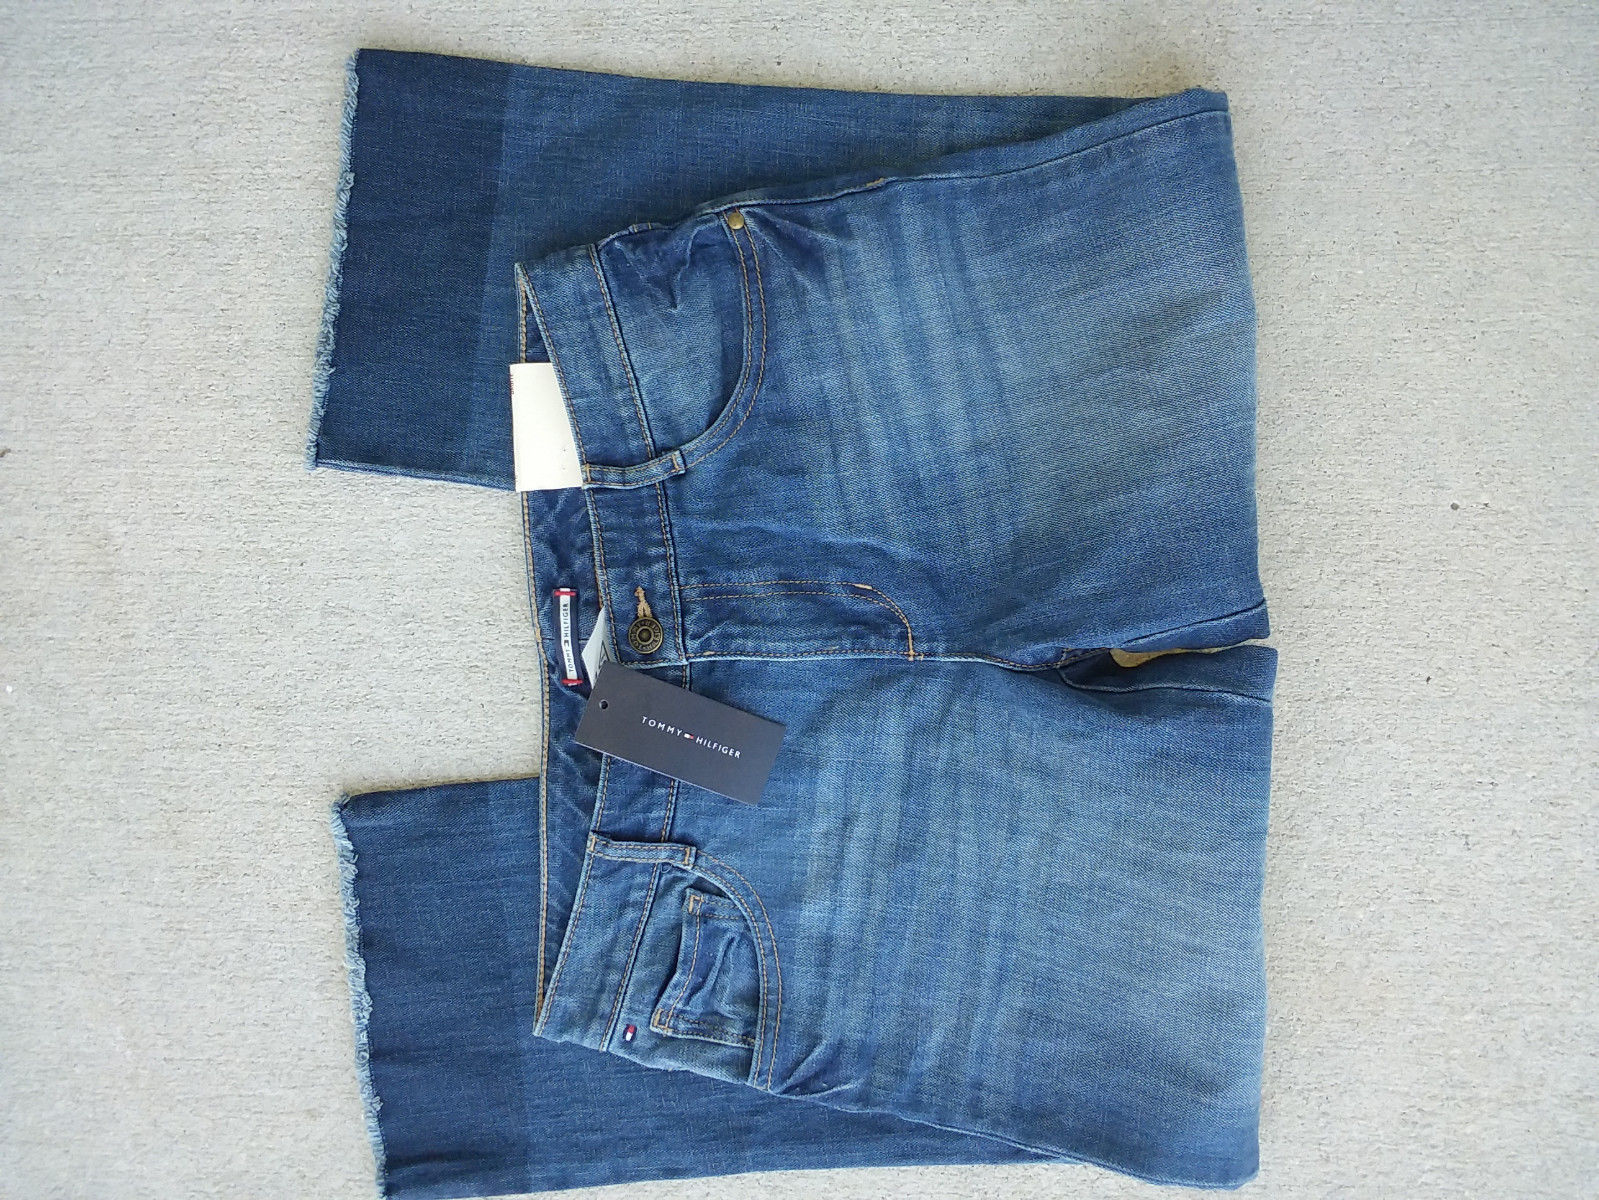 Primary image for Tommy Hilfiger Girl's Below the Waist Jeans, 16